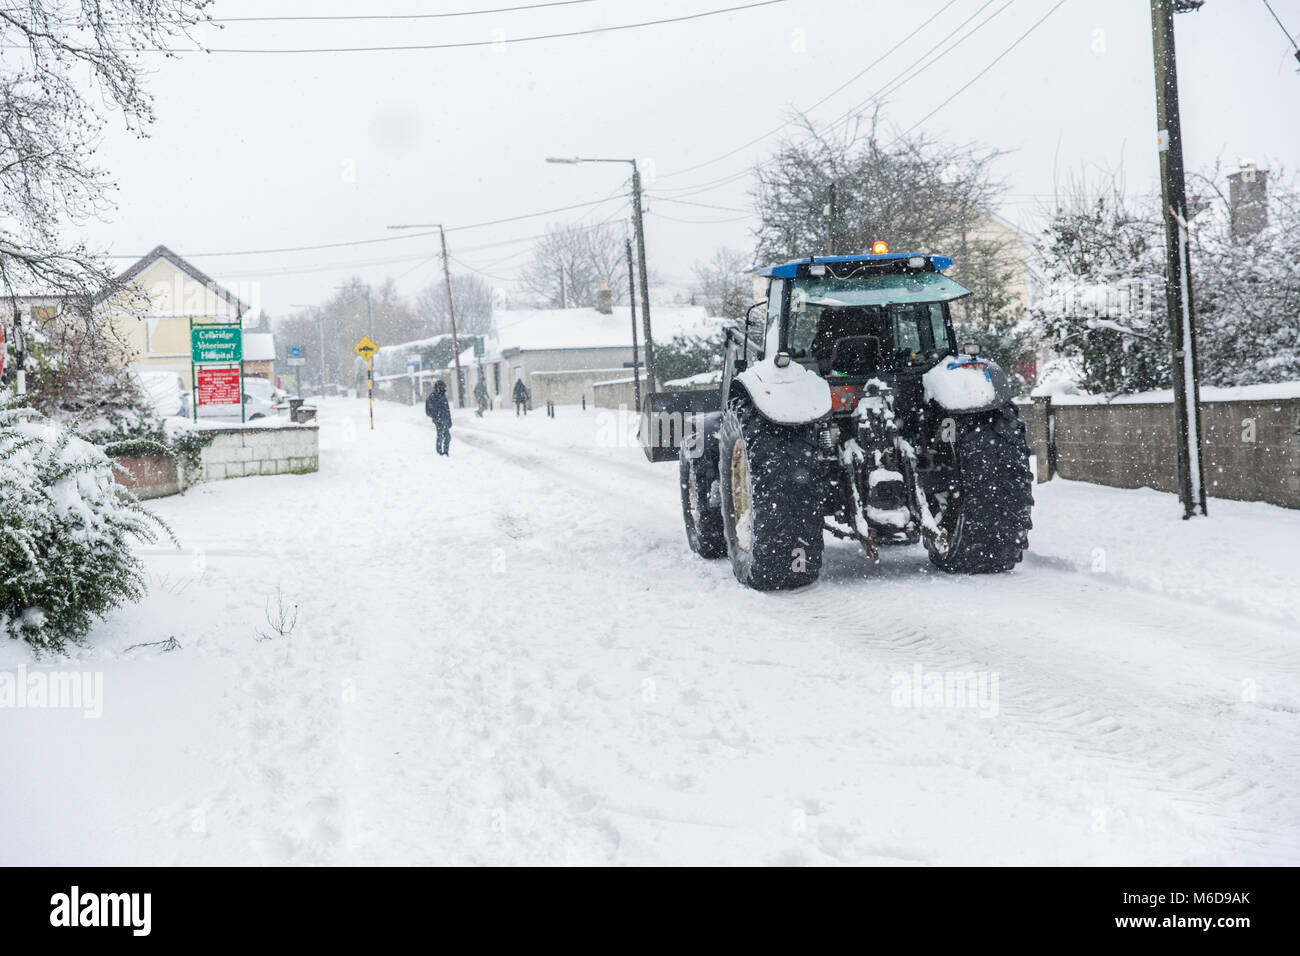 Celbridge, Kildare, Ireland. 02 Mar 2018: Tractor with front loader driving through covered in snow Celbridge. Local - Stock Image